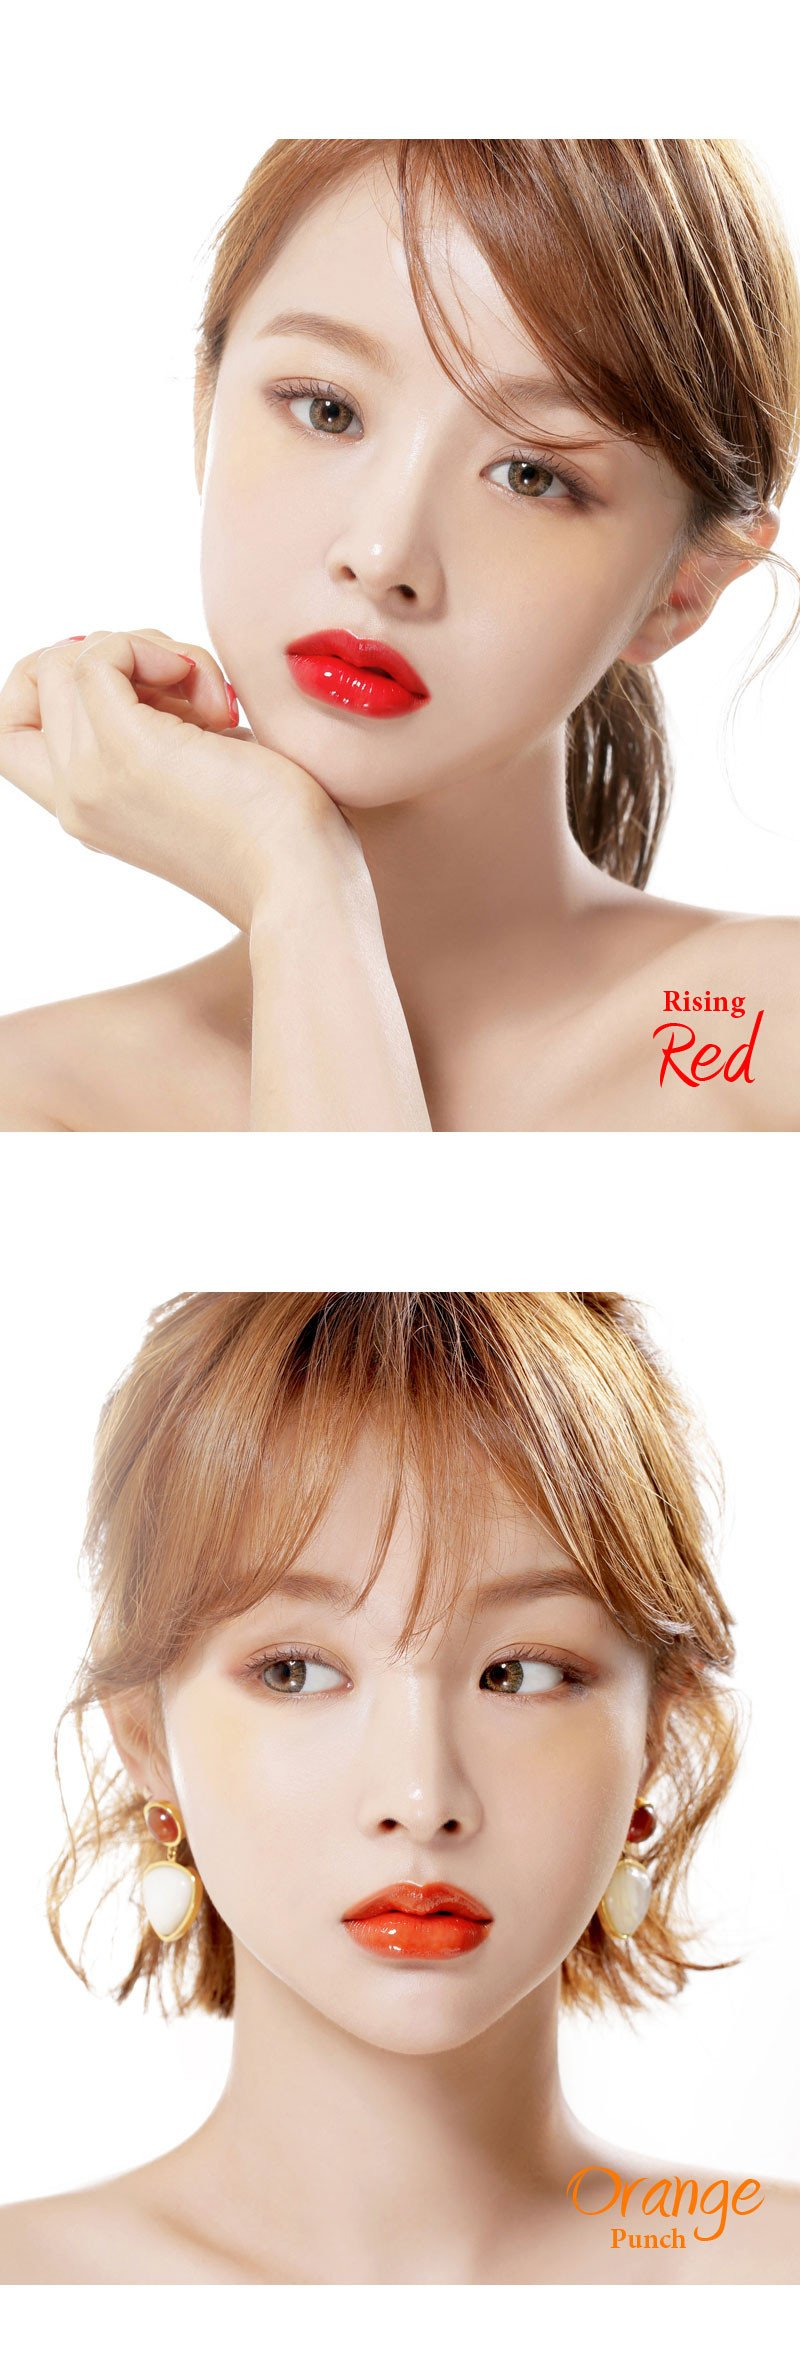 Korea's Cosmetic Brand, Vely Vely Water Tint Lip Pumping Duo in Rising Red and Orange Punch on Im Jihyun!